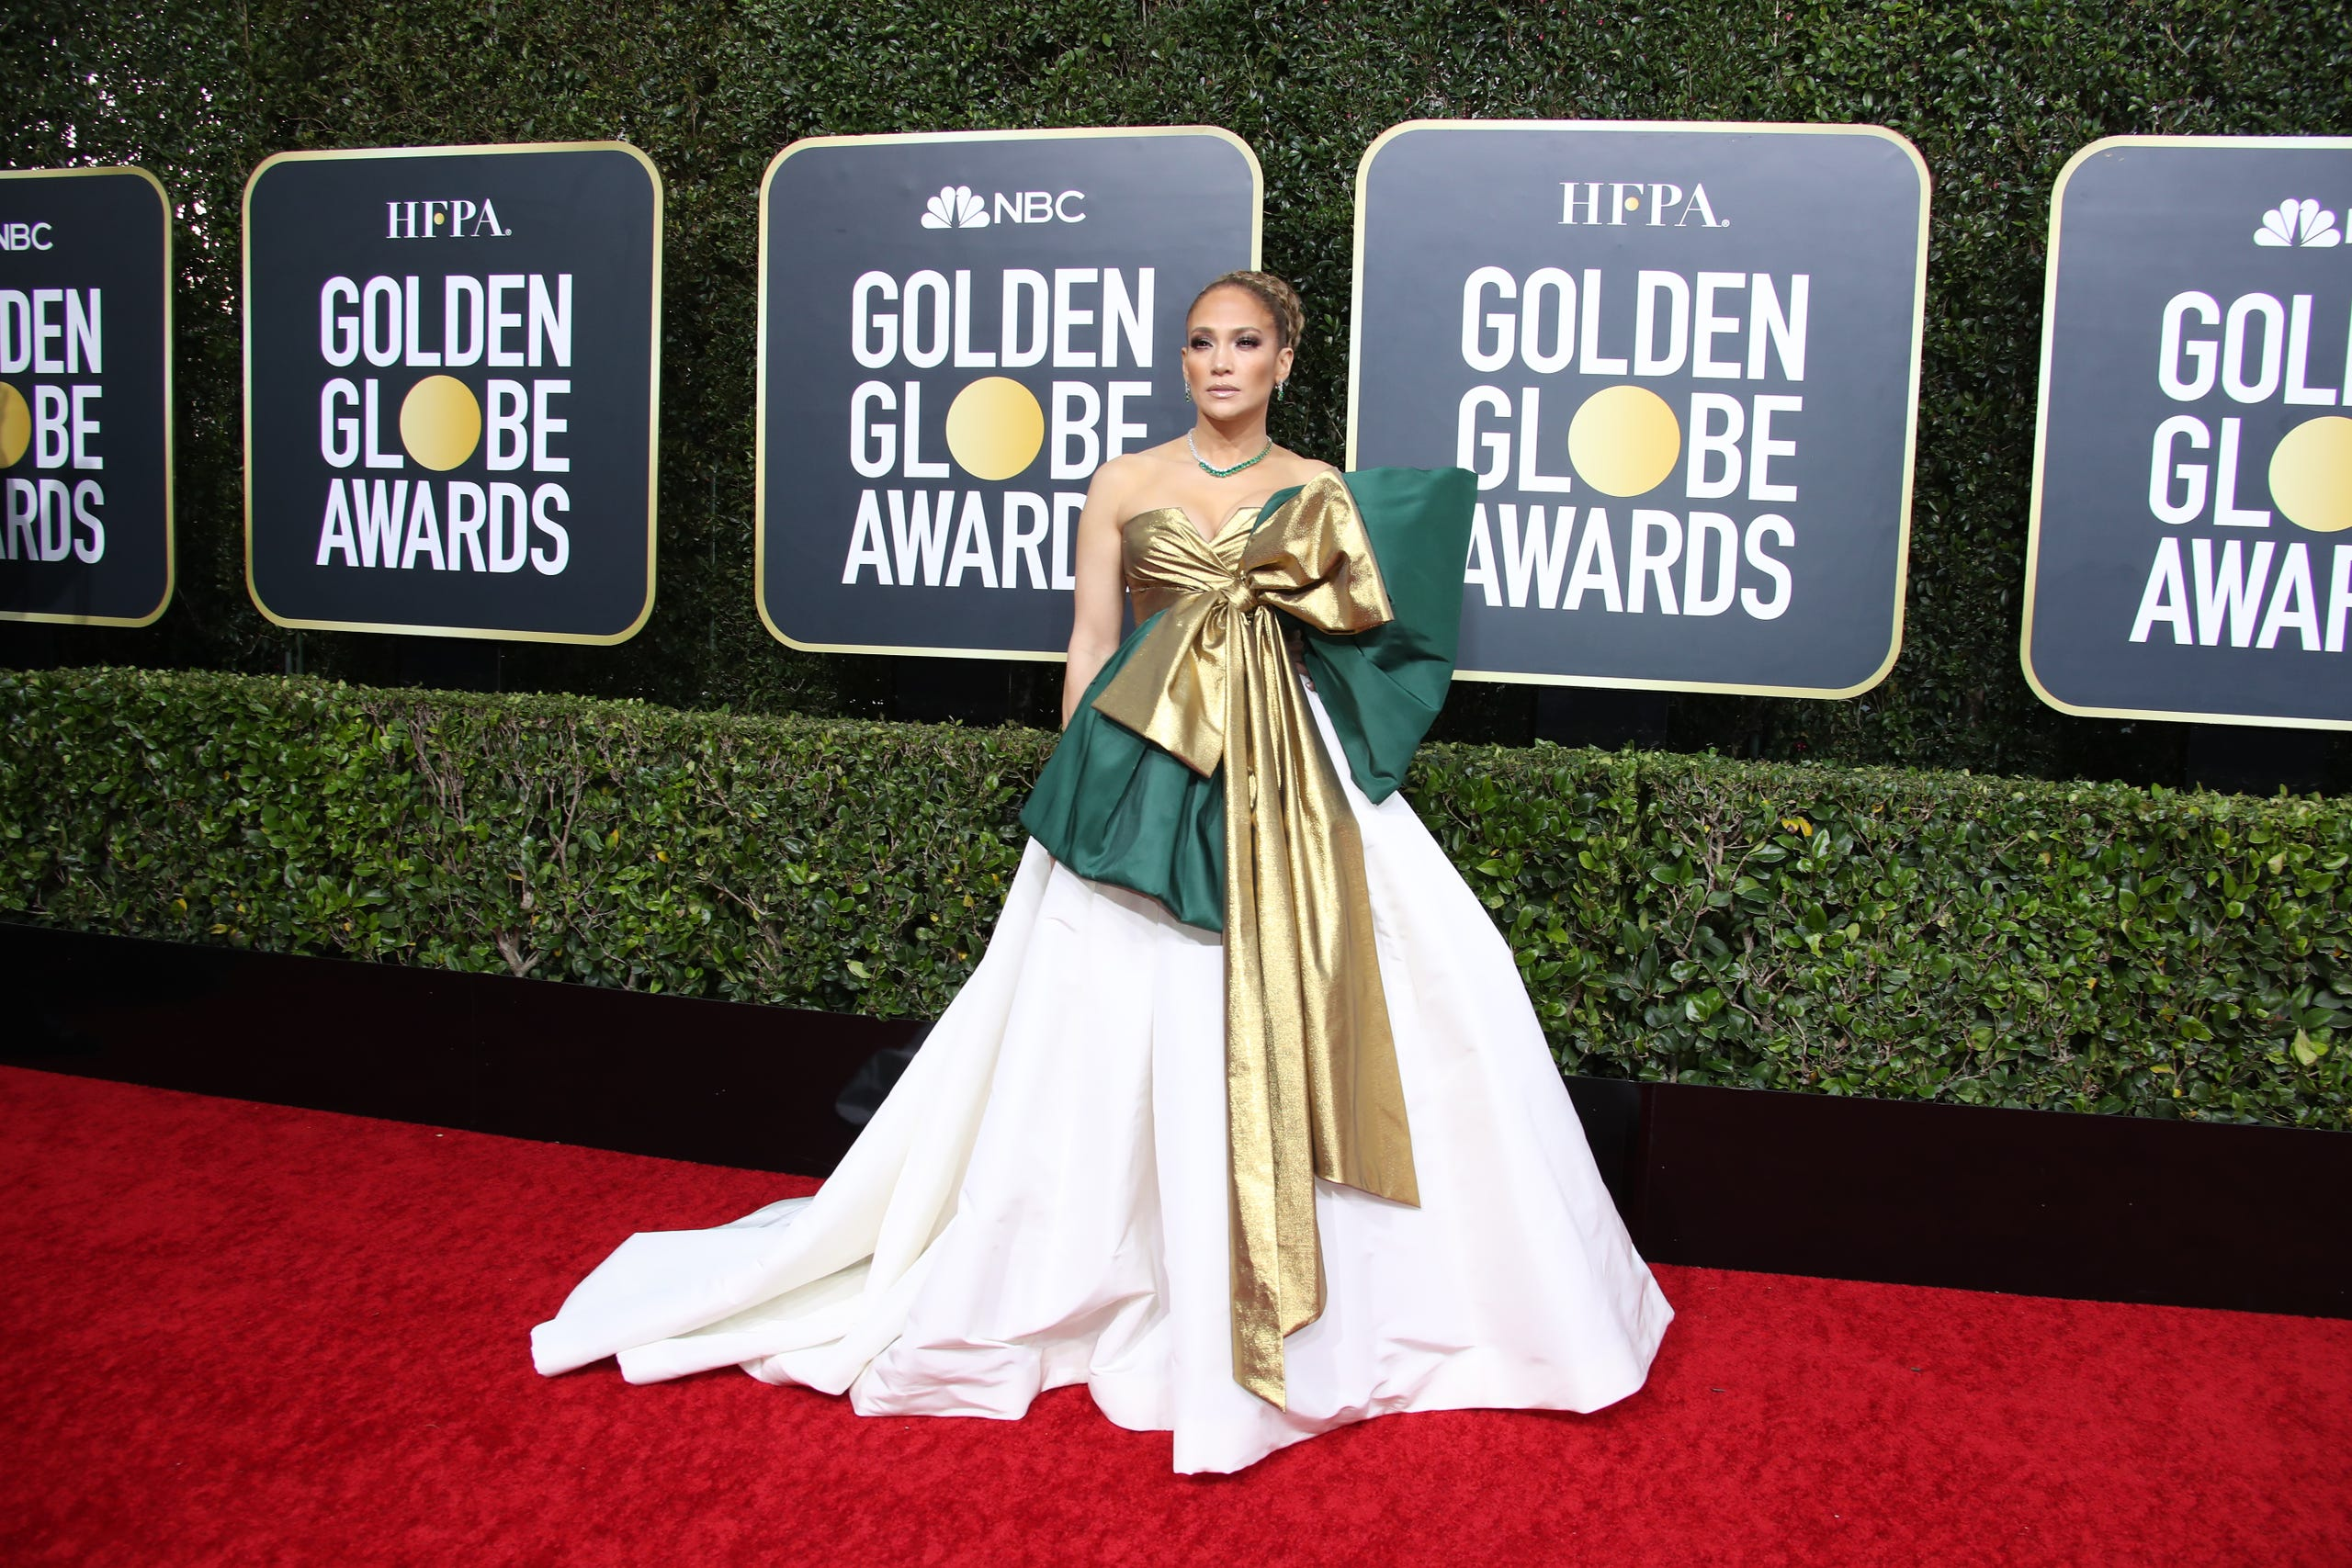 """It's showtime! TV and movie stars hit the carpet for Sunday's Golden Globes, where """"Joker,"""" """"The Irishman"""" and """"Fleabag"""" vyed for top prizes. Pictured, supporting actress nominee Jennifer Lopez (""""Hustlers"""") arrives at the Beverly Hilton in Los Angeles."""